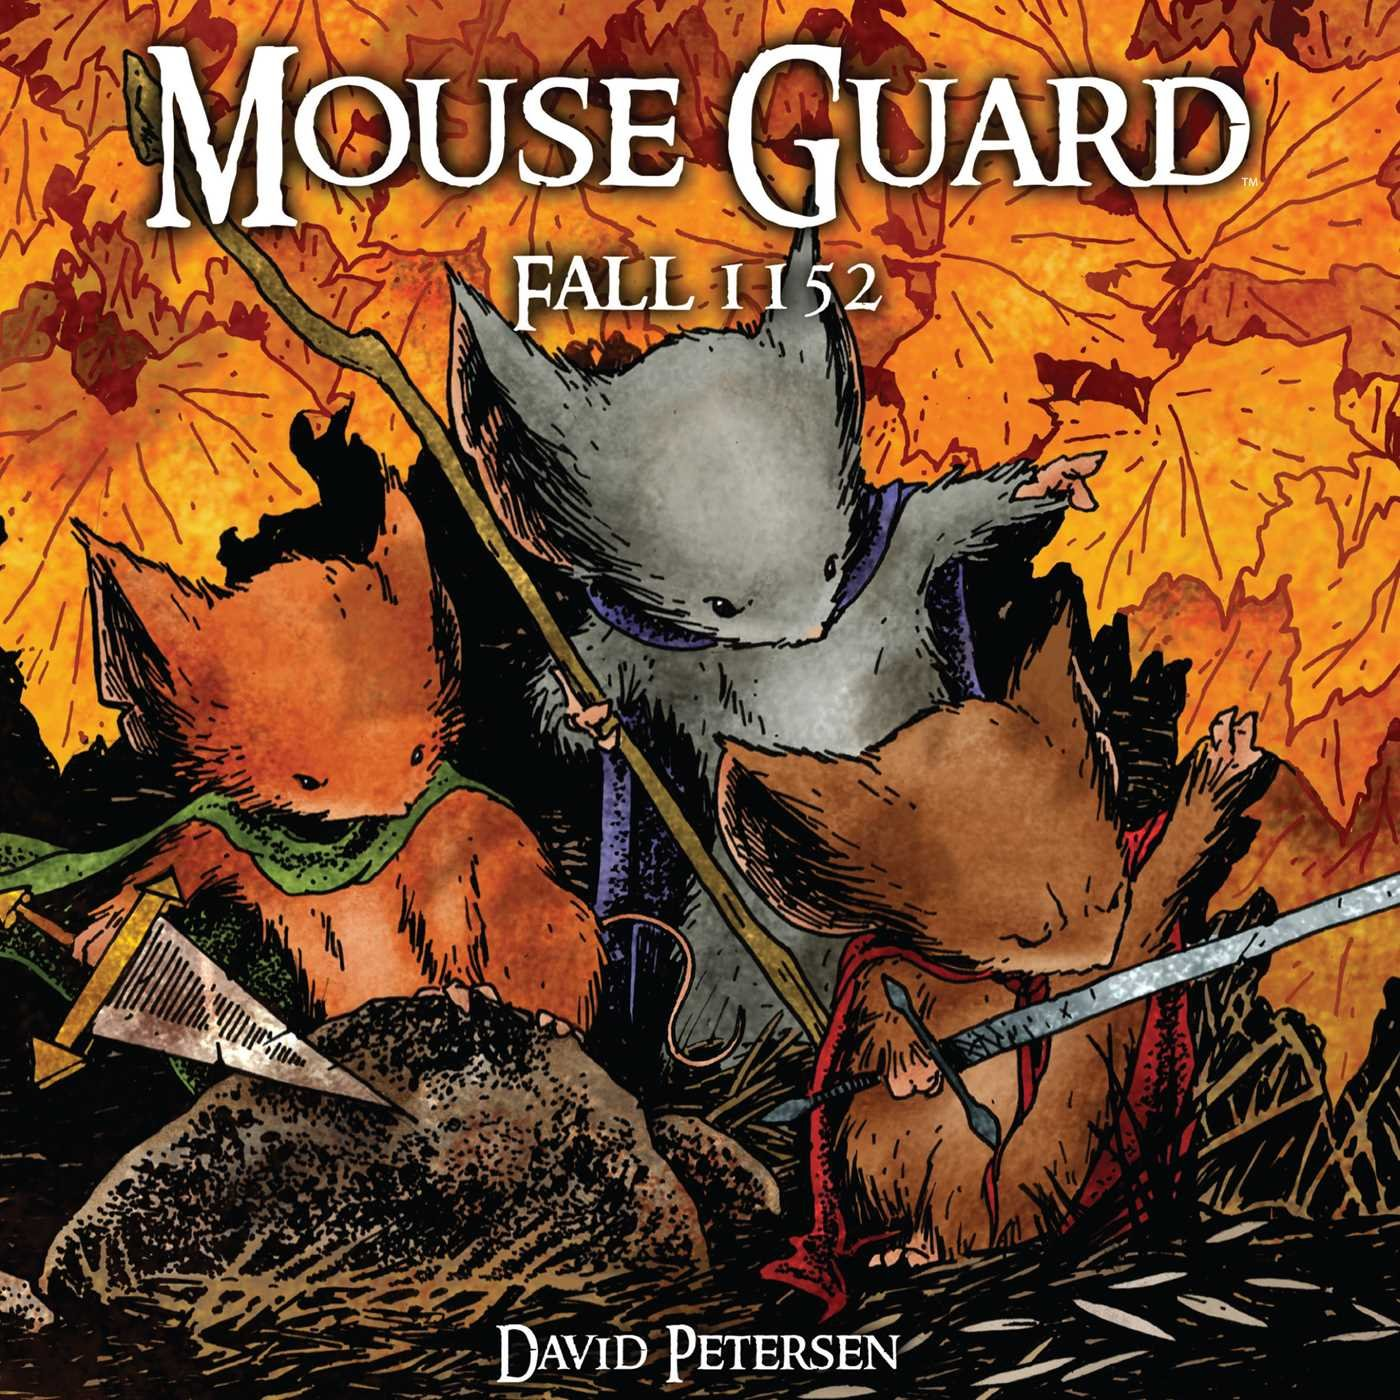 Mouse Guard Volume 1: Fall 1152: Amazon.de: David Petersen: Fremdsprachige  Bücher